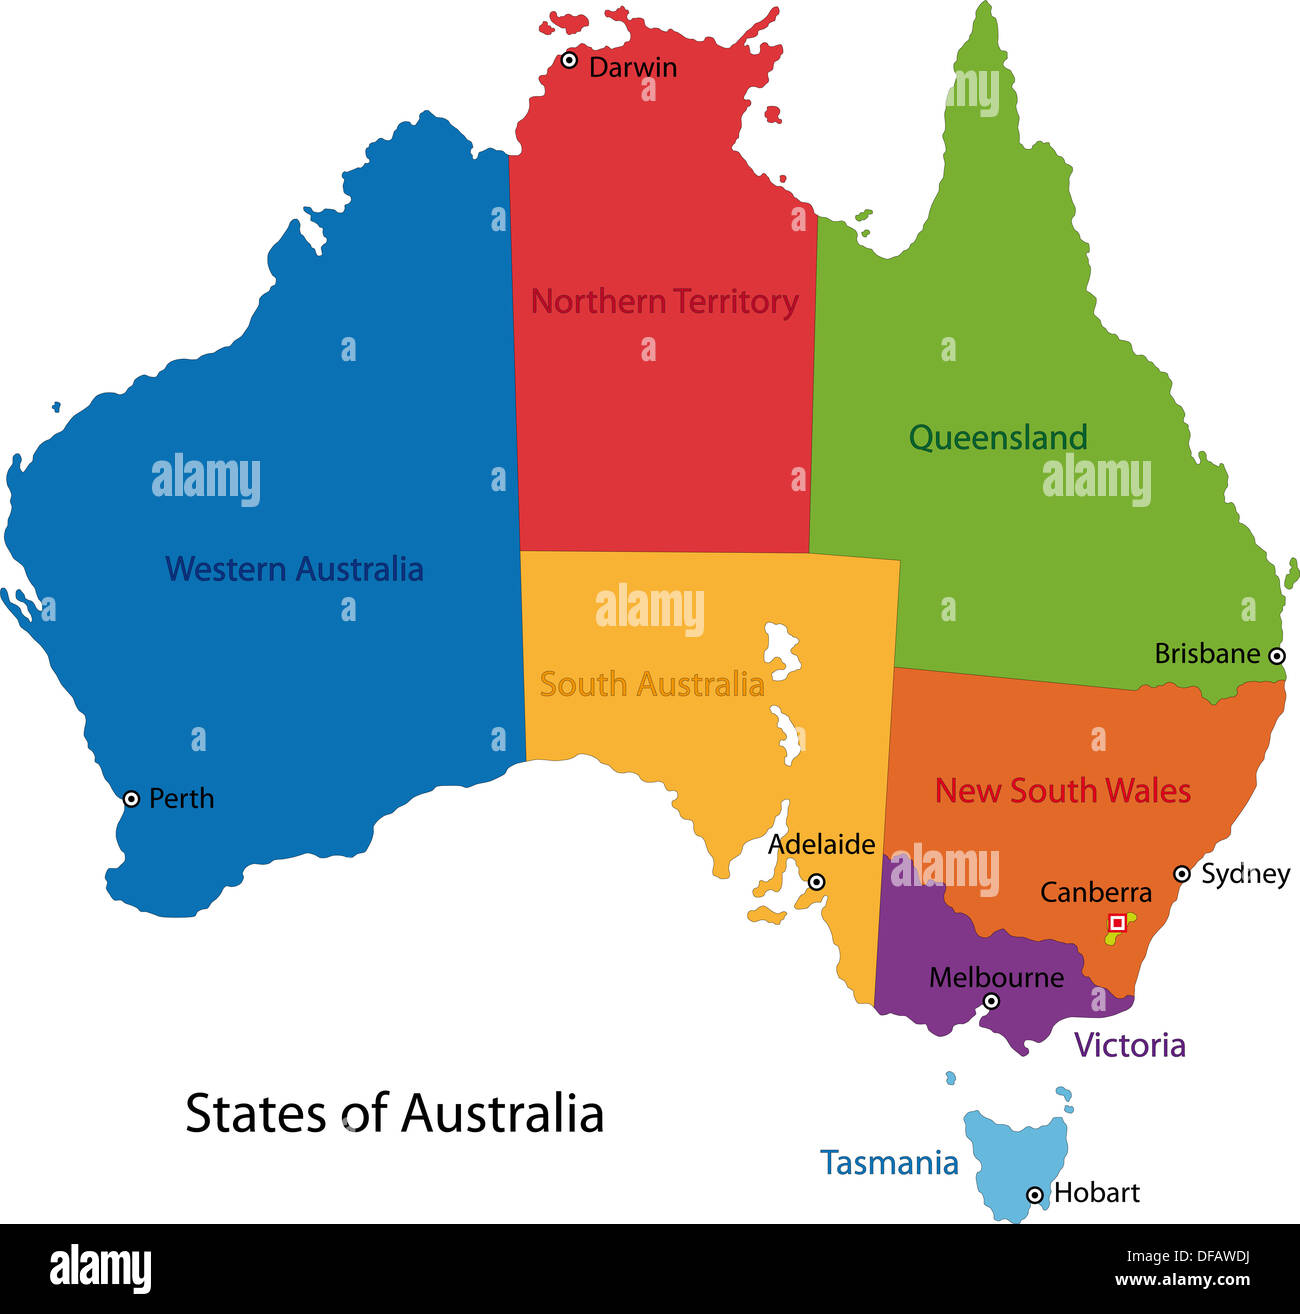 Australia map Stock Photo 61090446 Alamy